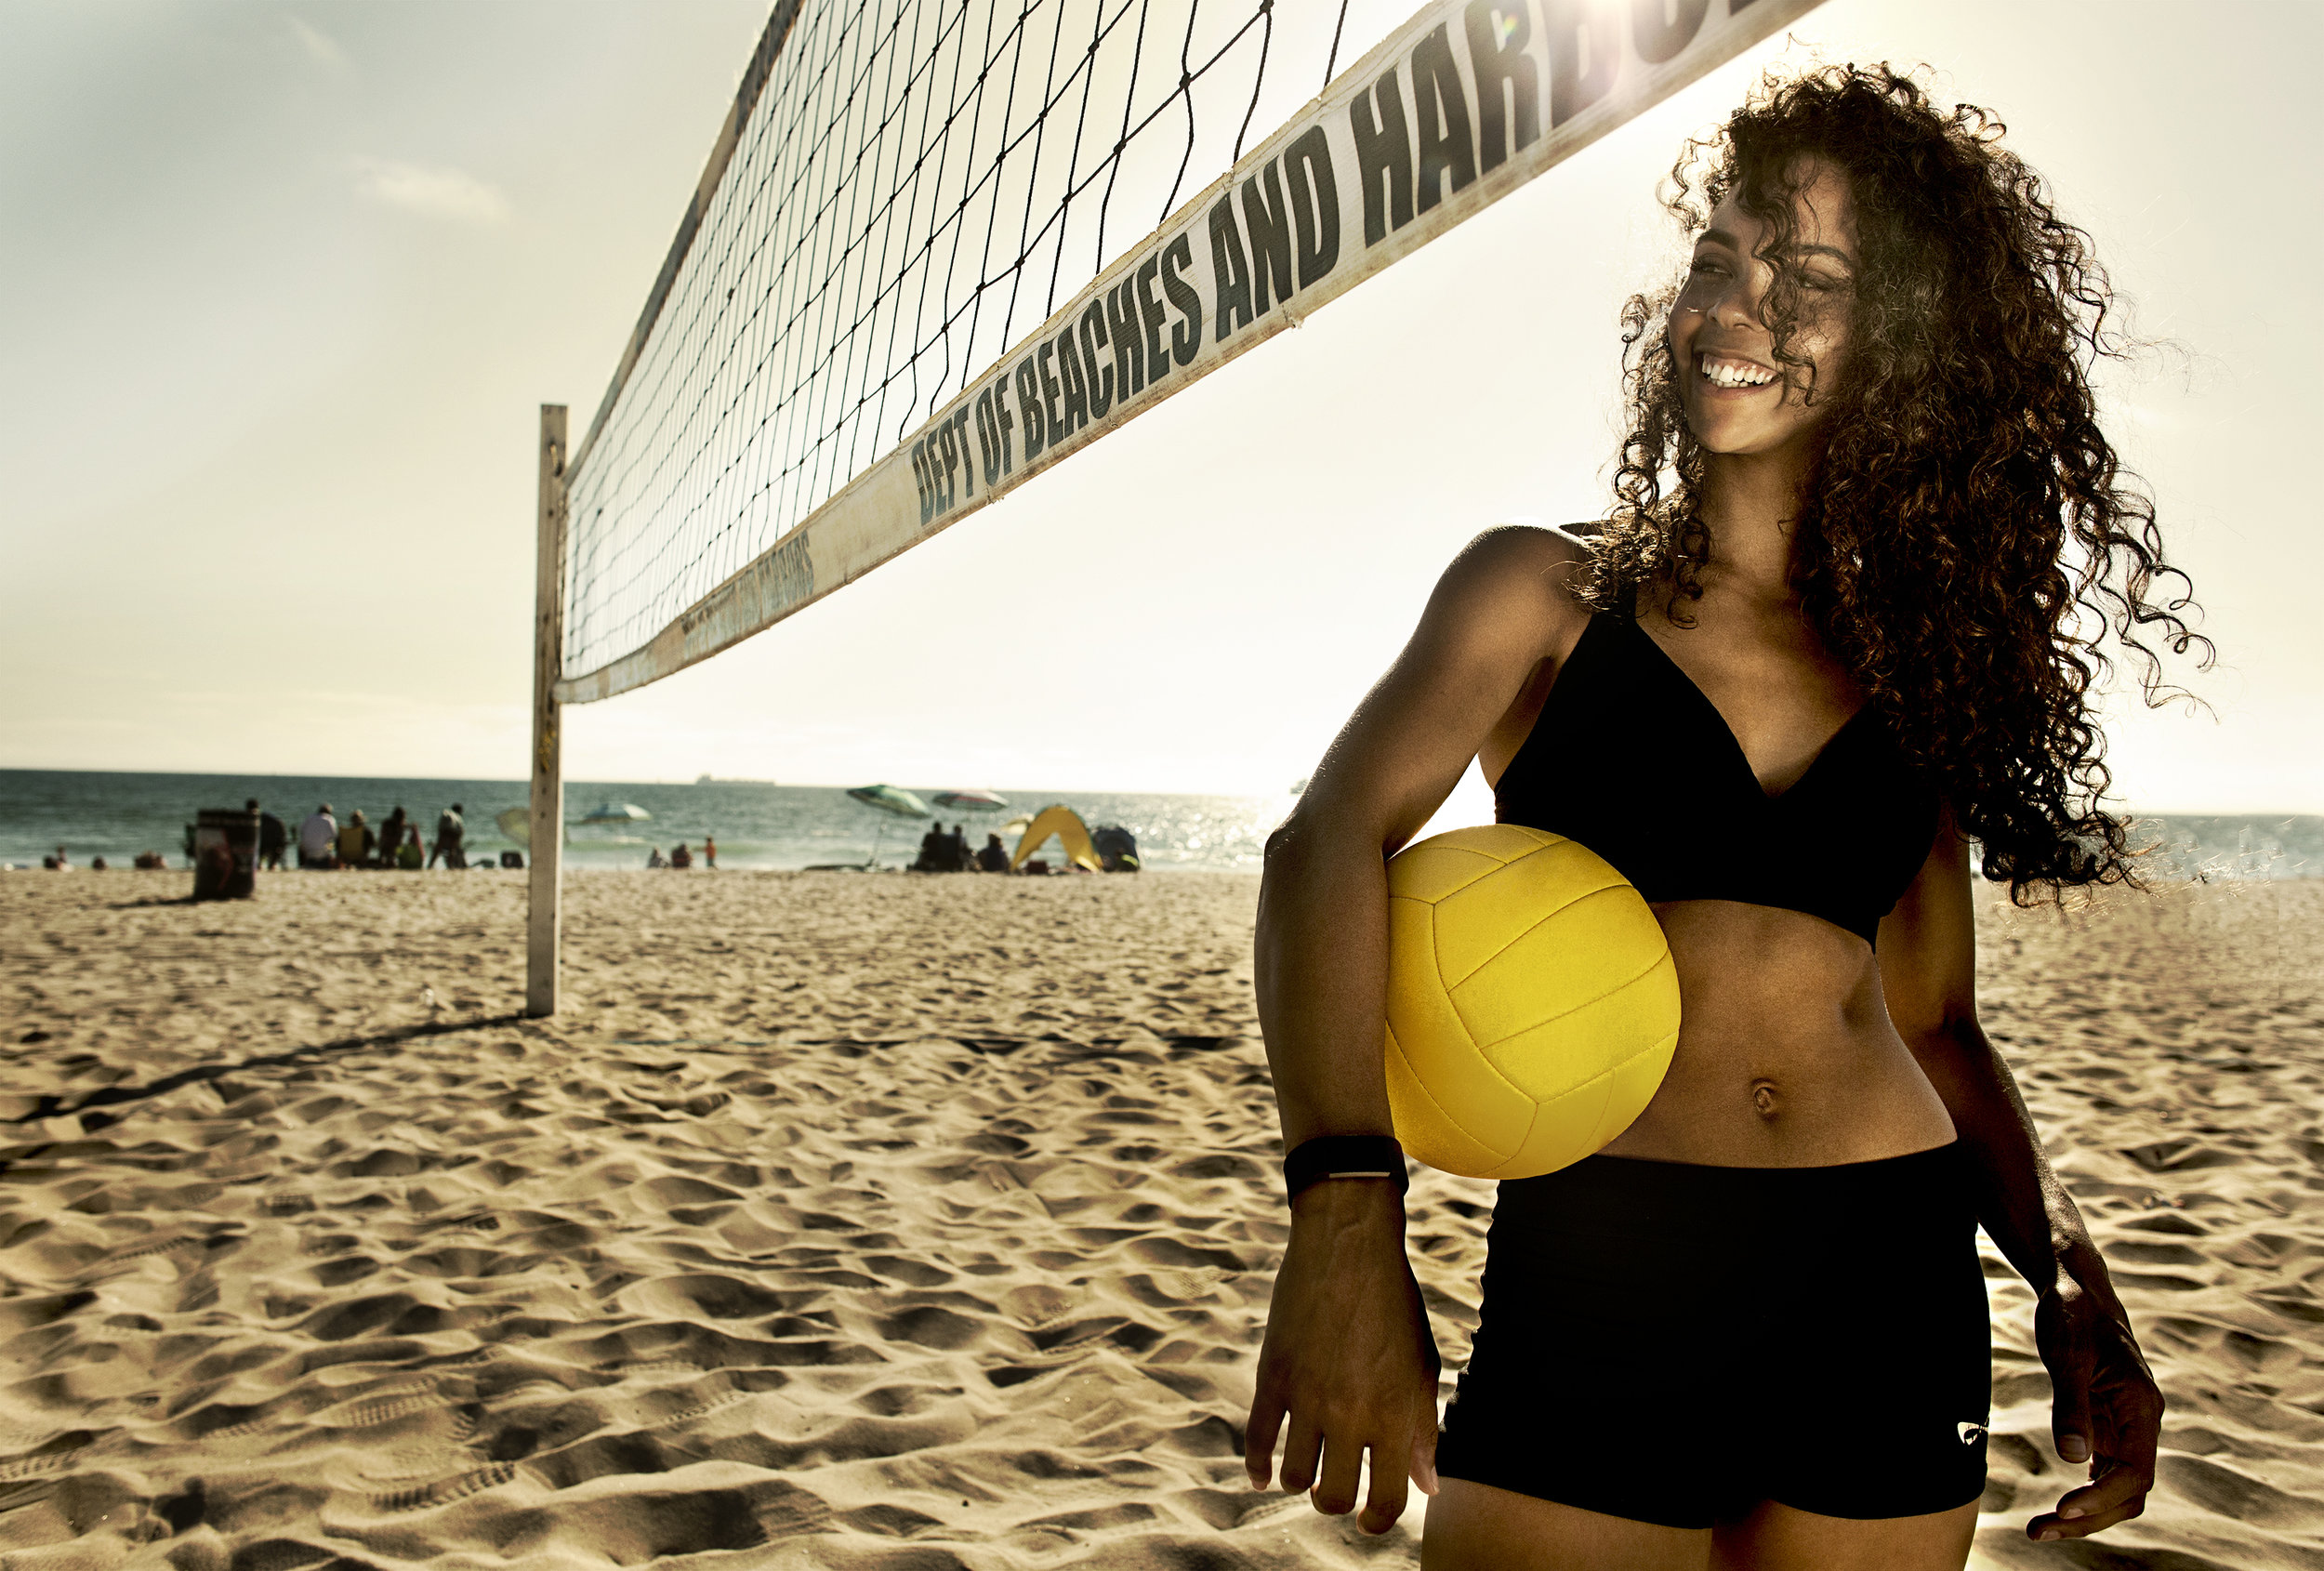 Katrina_Volleyball_Lifestyle_Ad_01.jpg